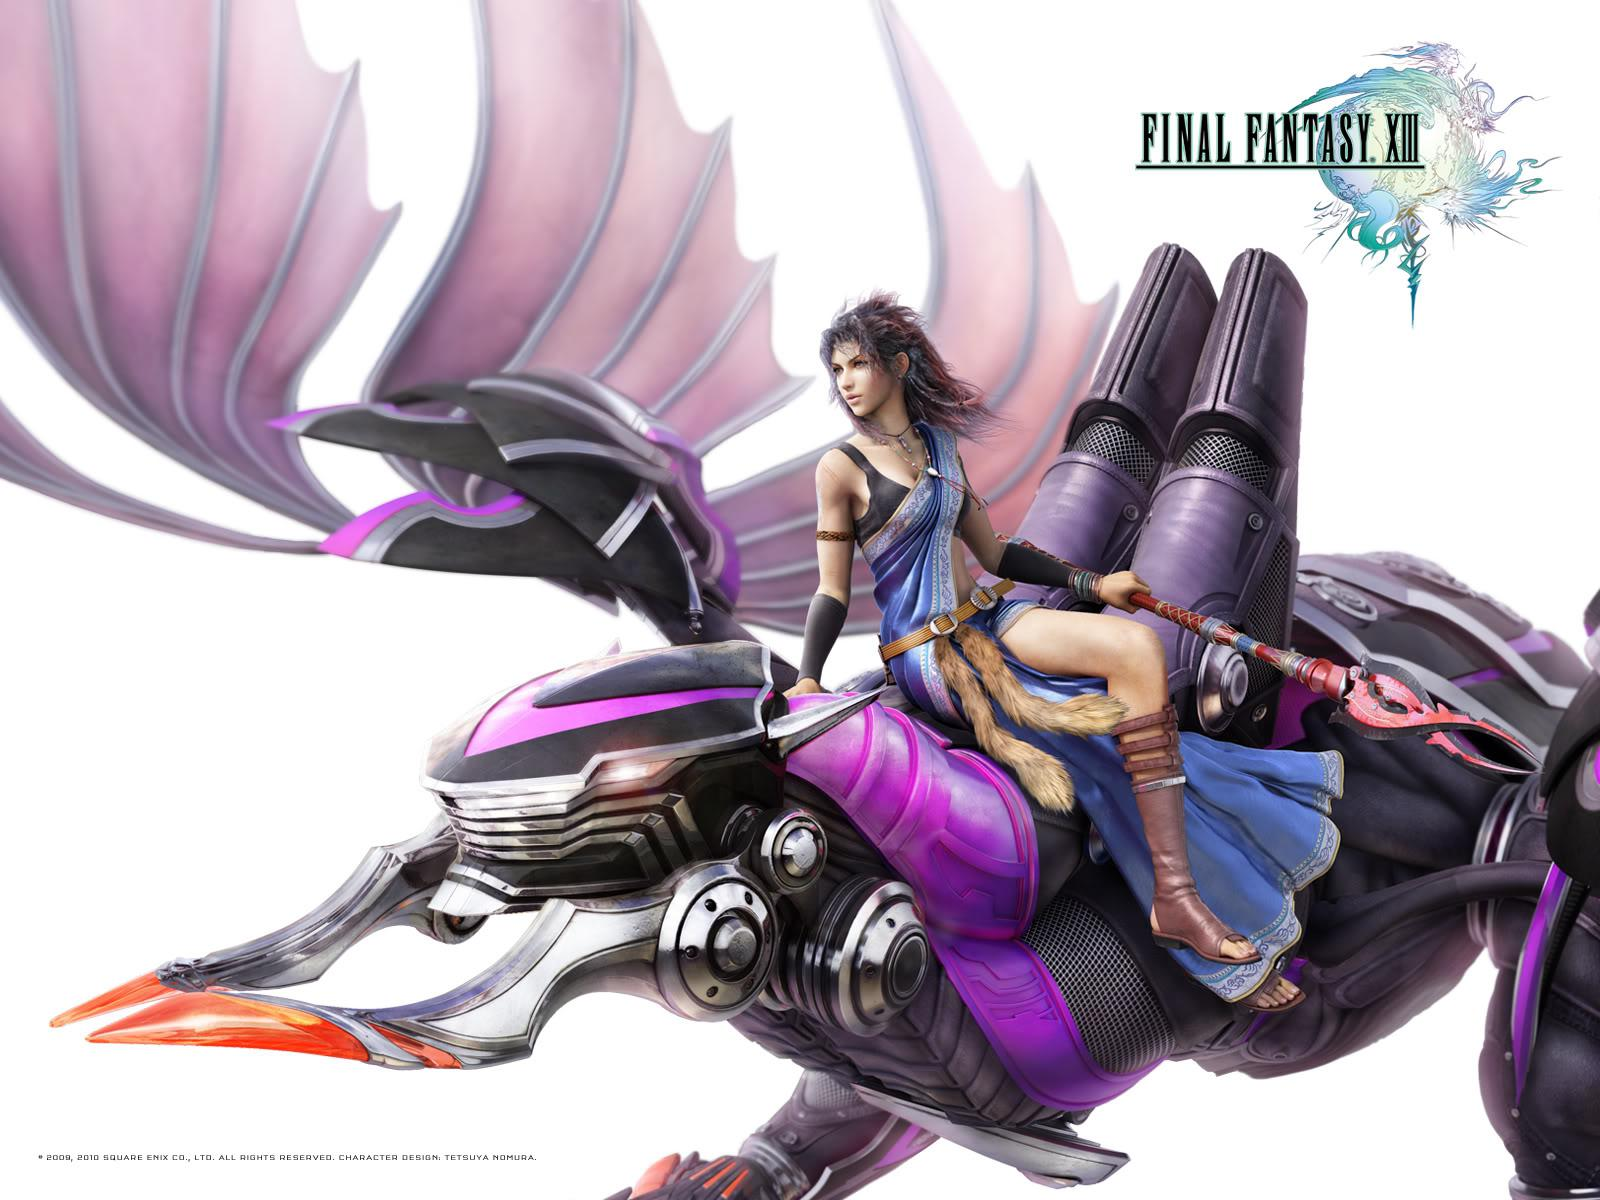 trololo blogg: ff13 wallpaper vanille